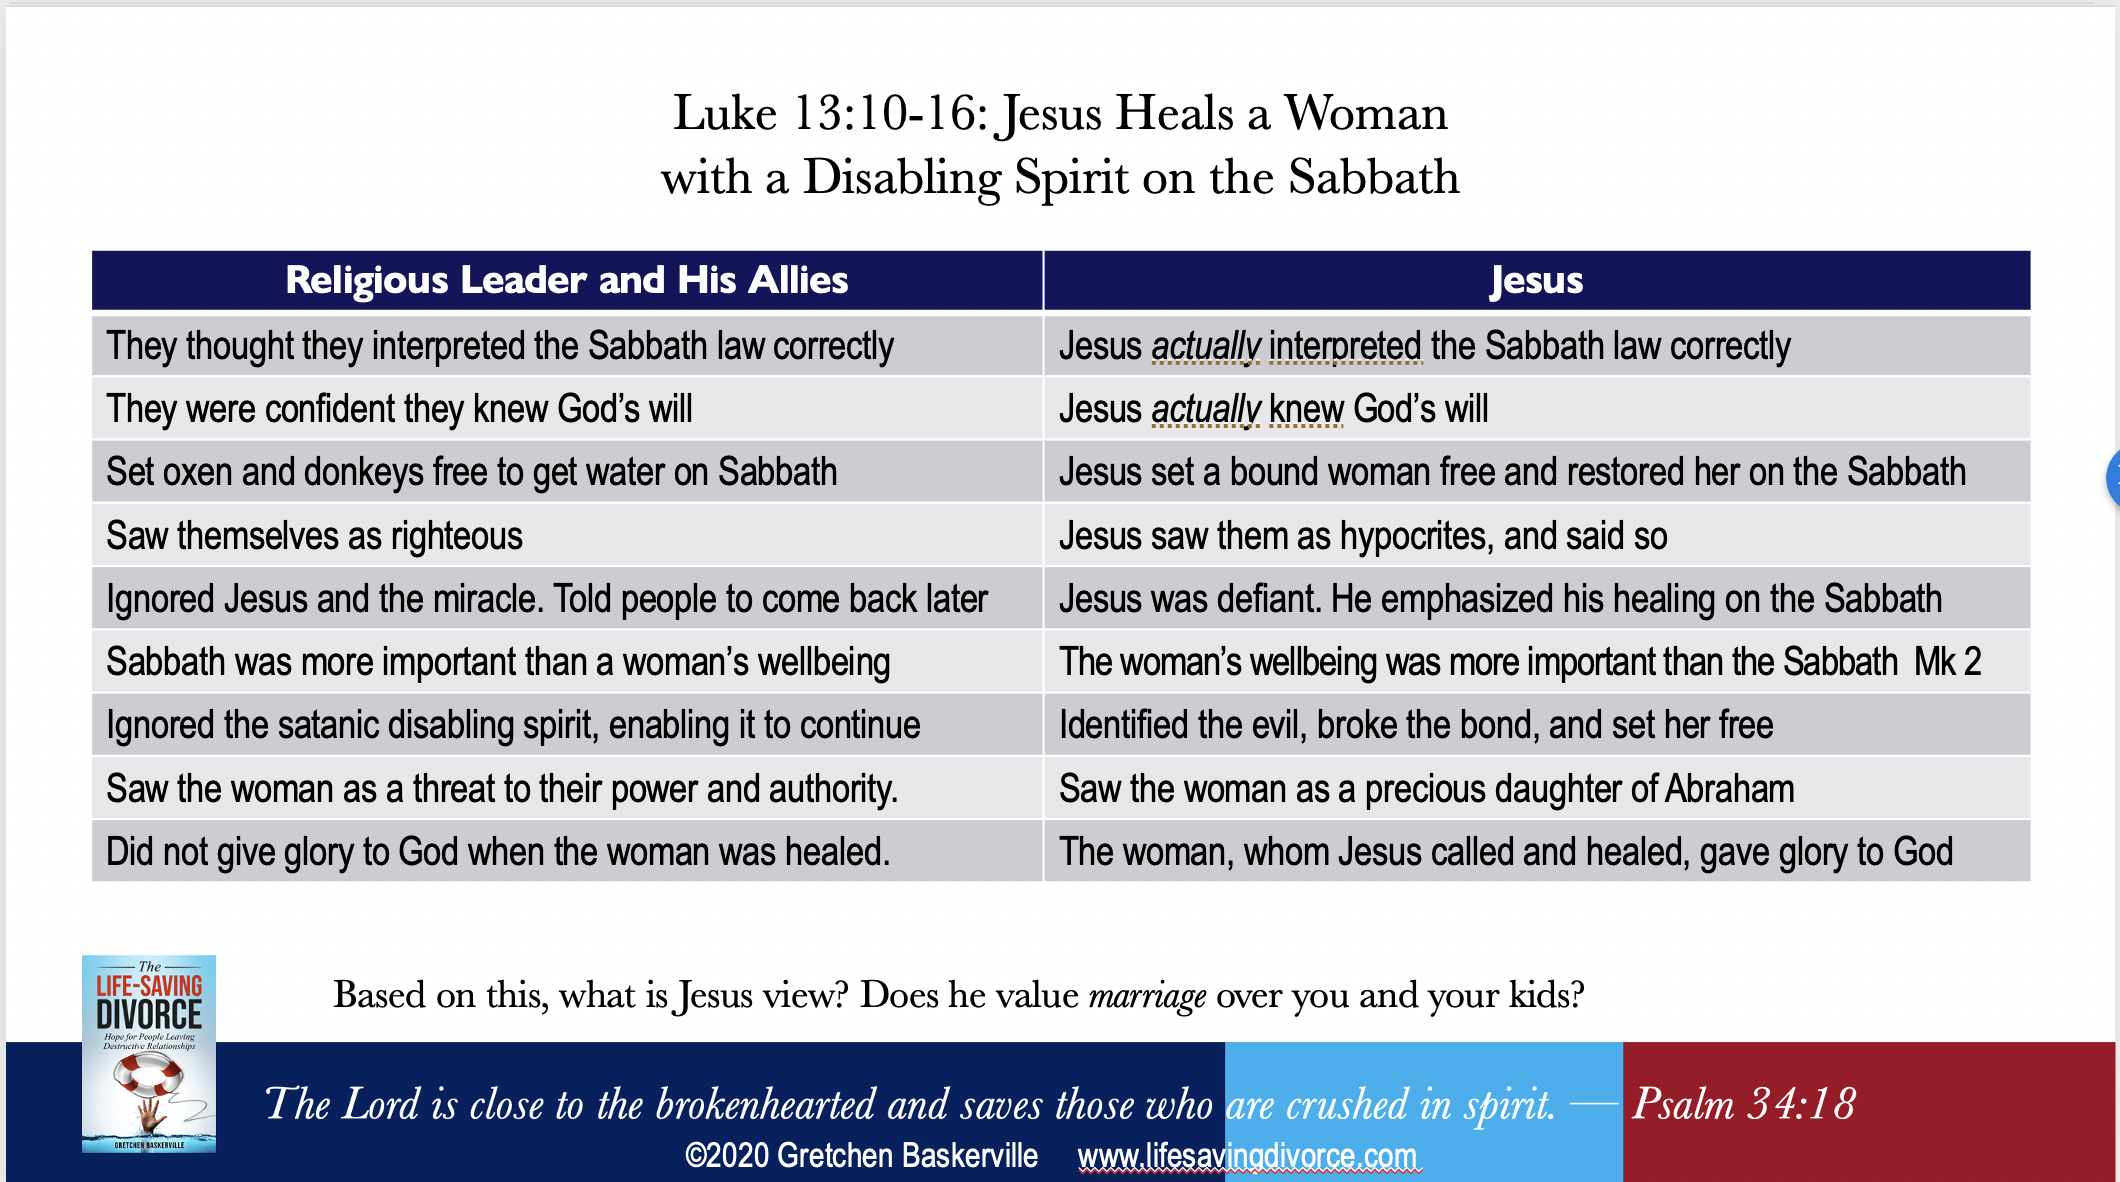 Luke 13: 10-16 Jesus Heals on the Sabbath Comparison Chart shows how Jesus reacted to the disabled women and contrasts it with how the synagogue leader did